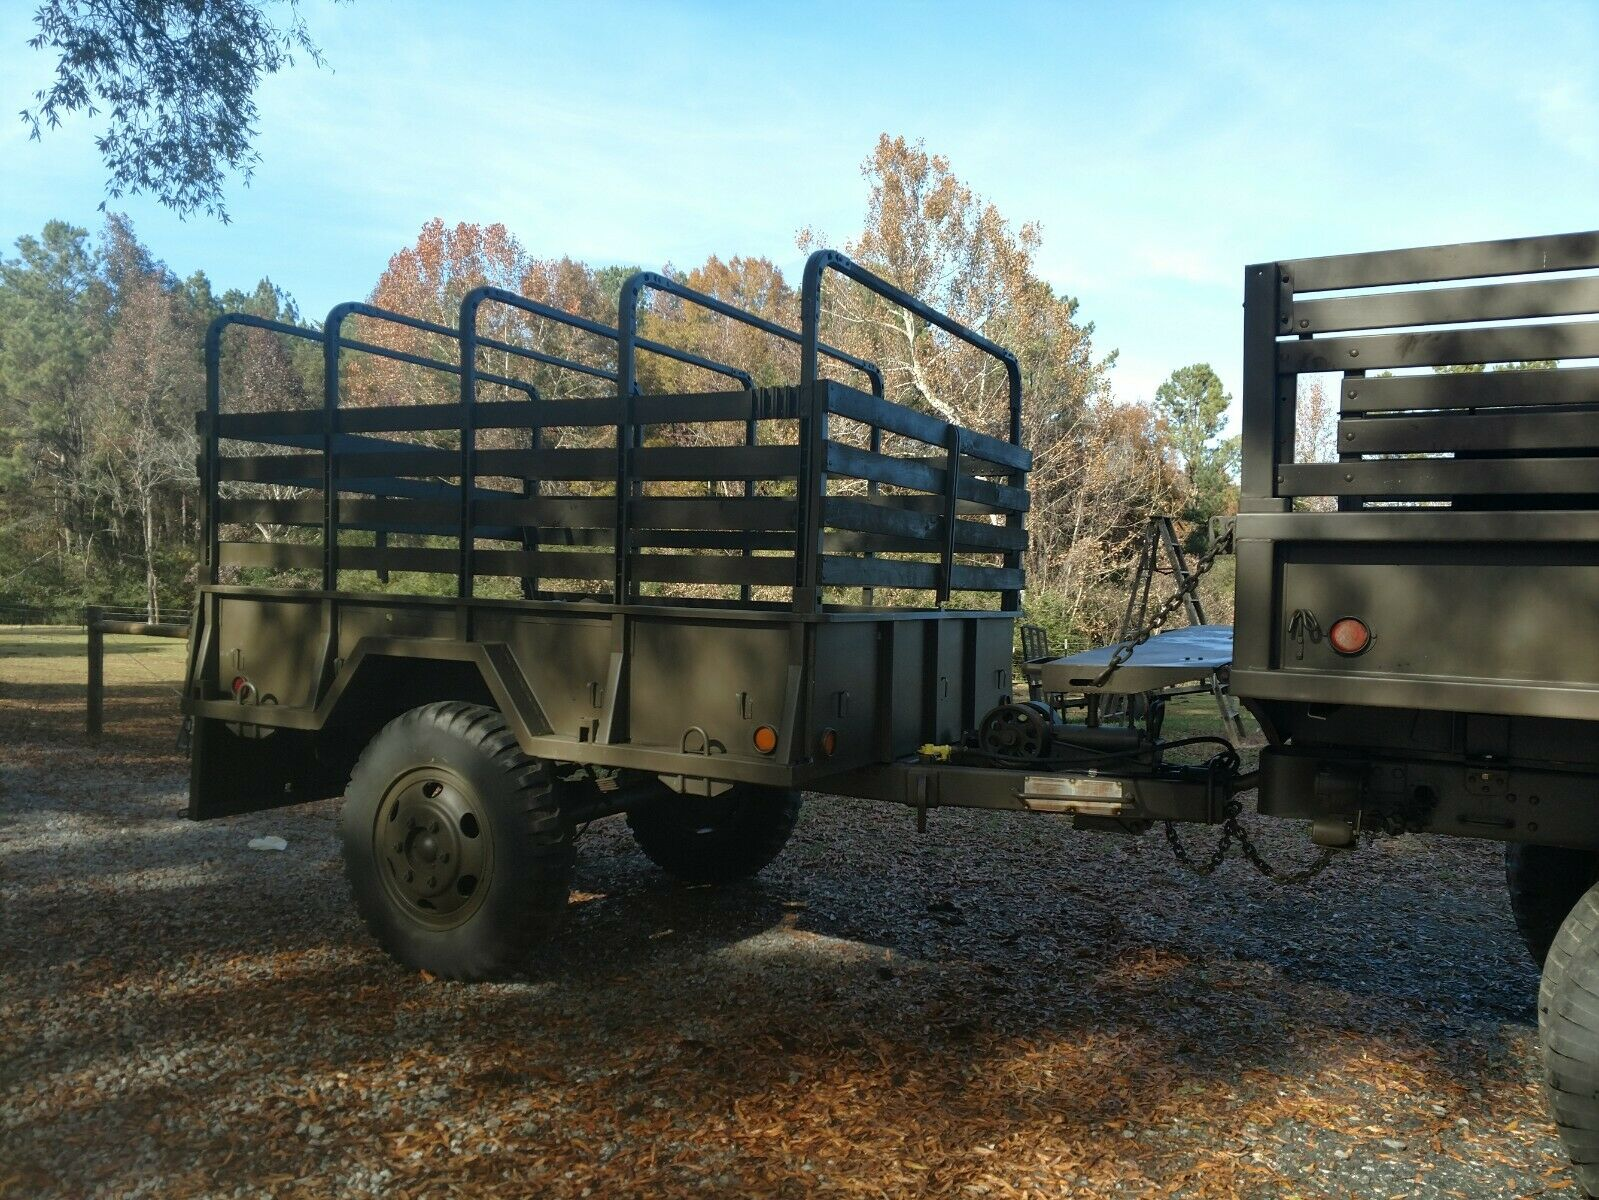 Professionally Restored 1966 AM General  M35 A2 military